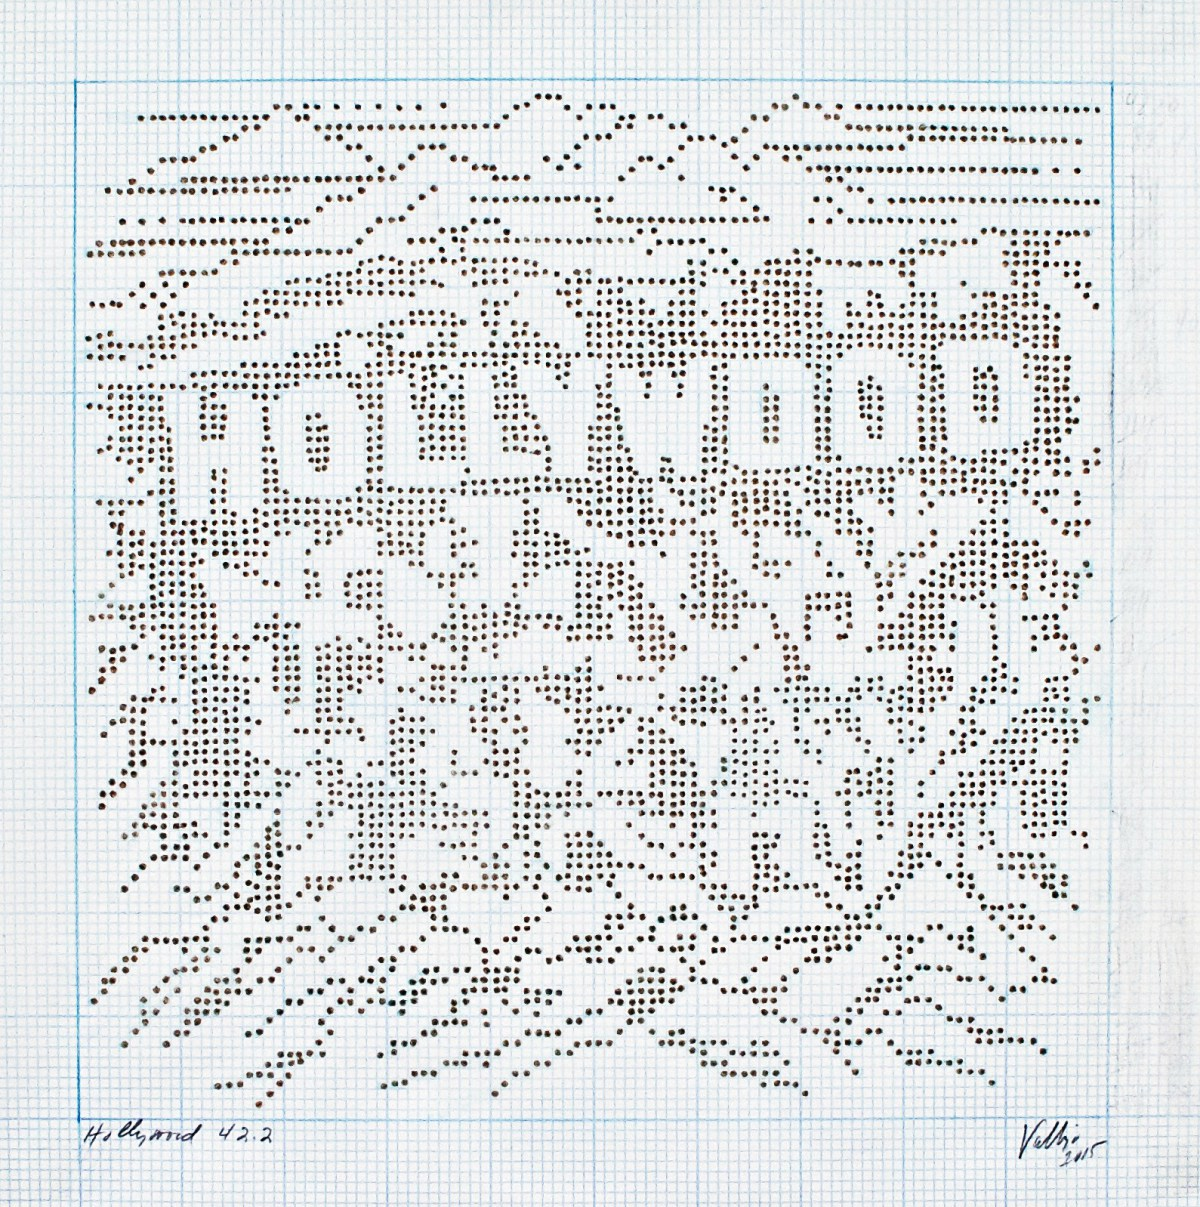 'Hollywood 42.2' from 'The Brown Dot Project'  image courtesy of the artist Linda Vallejo.